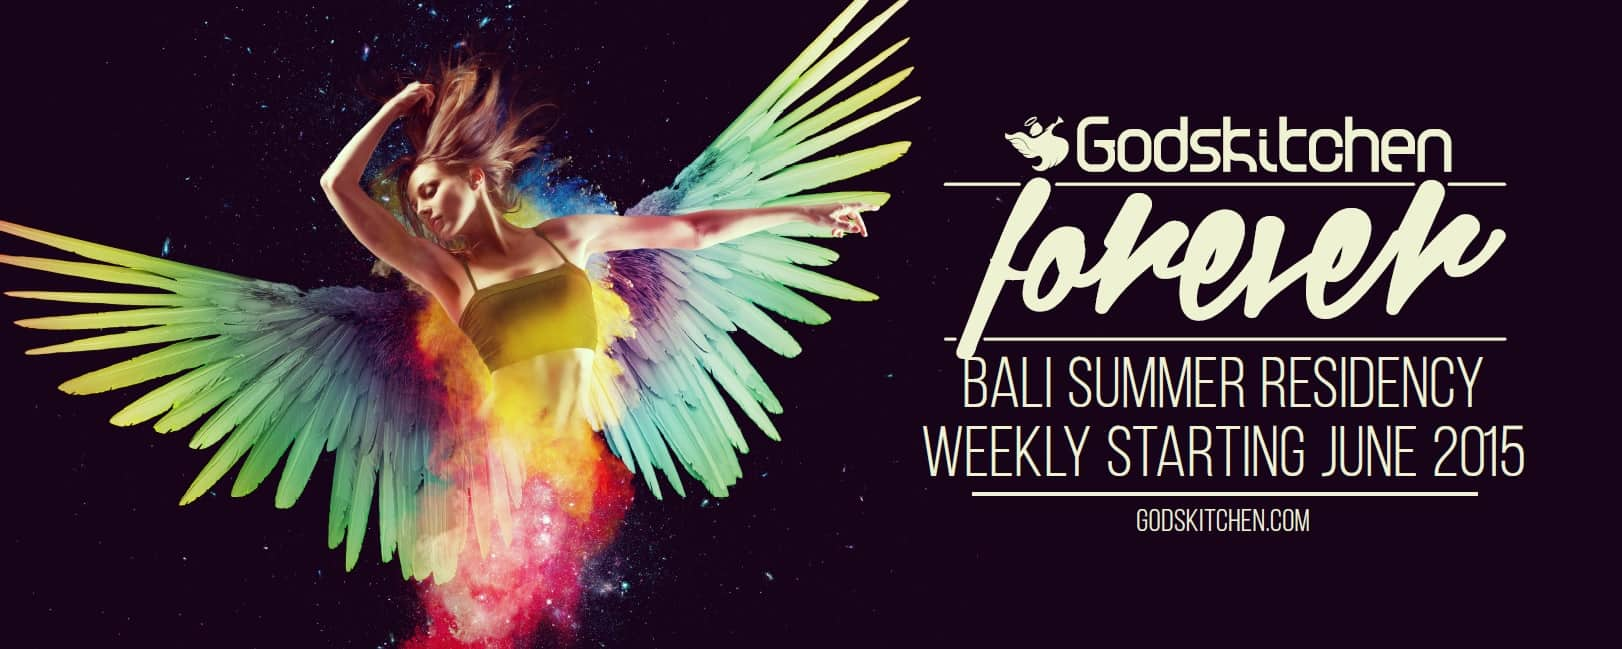 UBER BRAND GODSKITCHEN IS ON ITS WAY TO BALI FOR SUMMER RESIDENCY